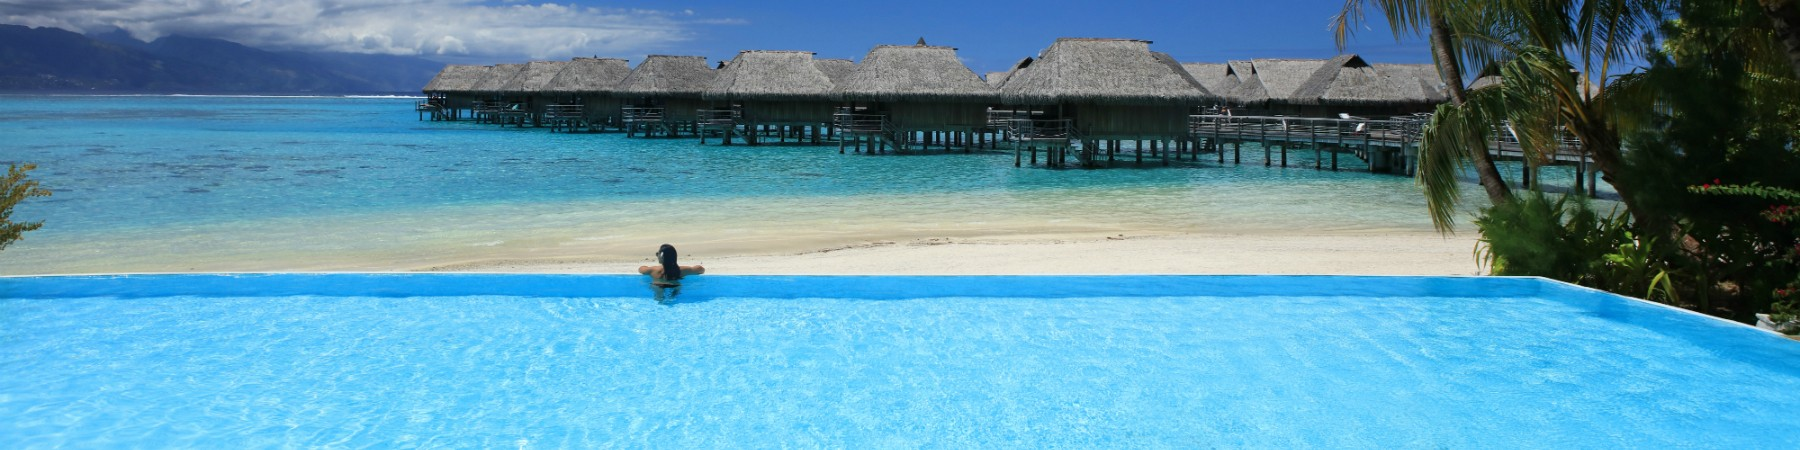 sofitel-moorea-luxury-beach1